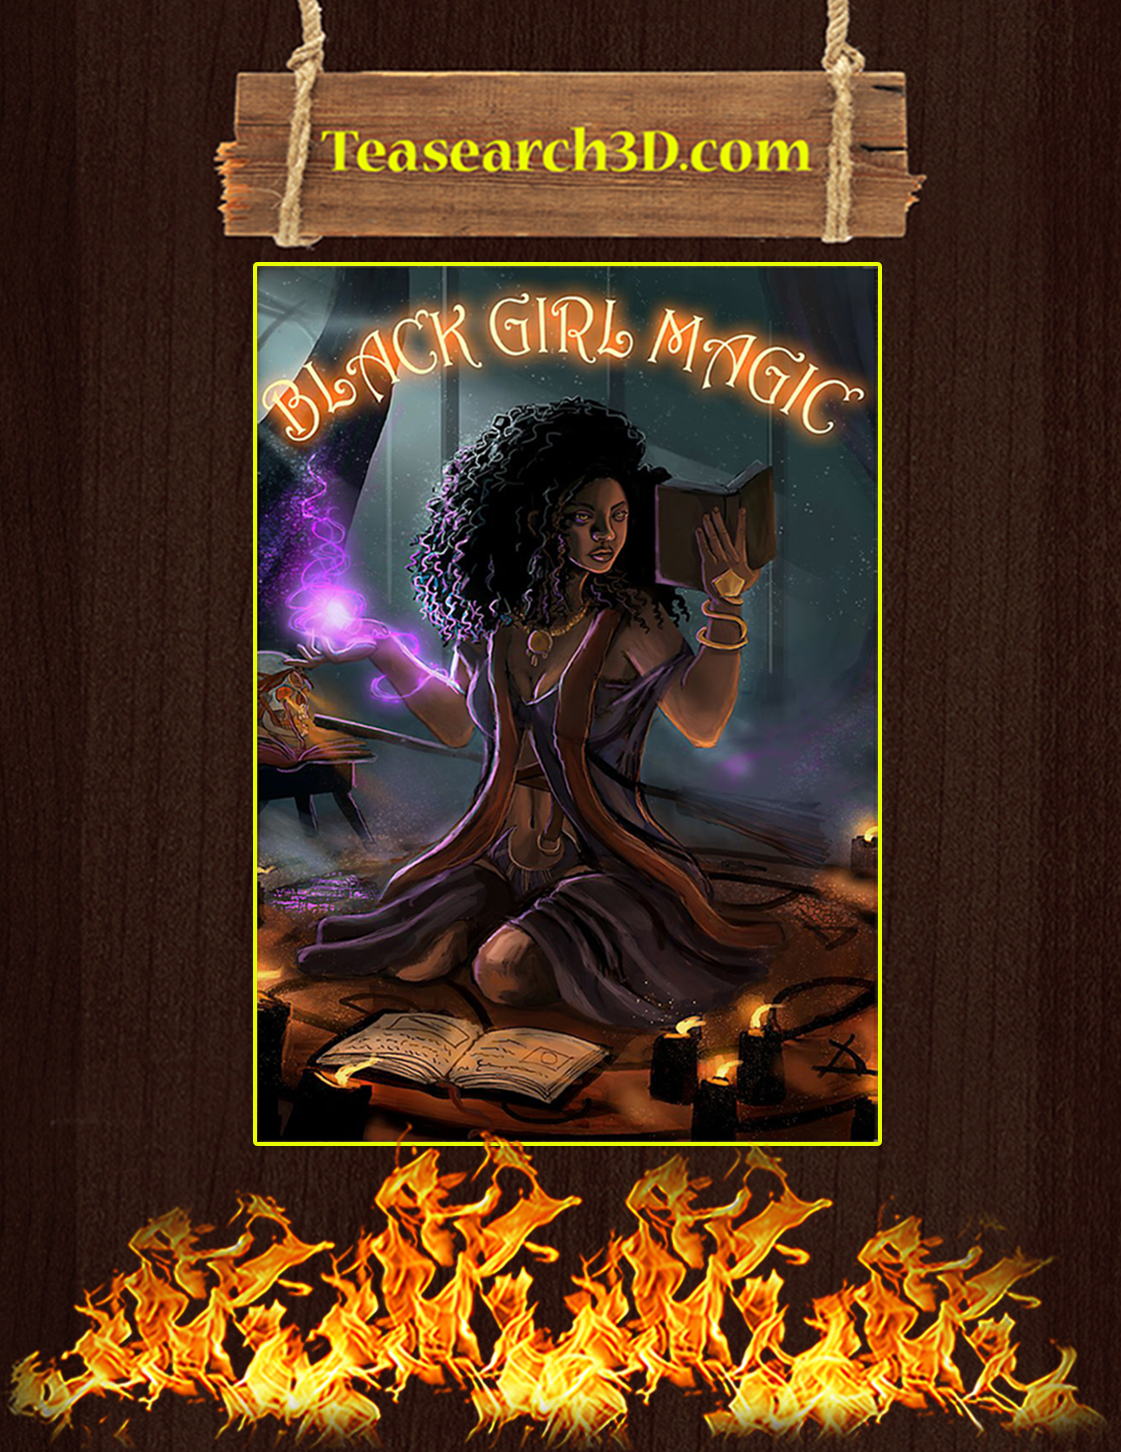 Witch black girl magic poster A3